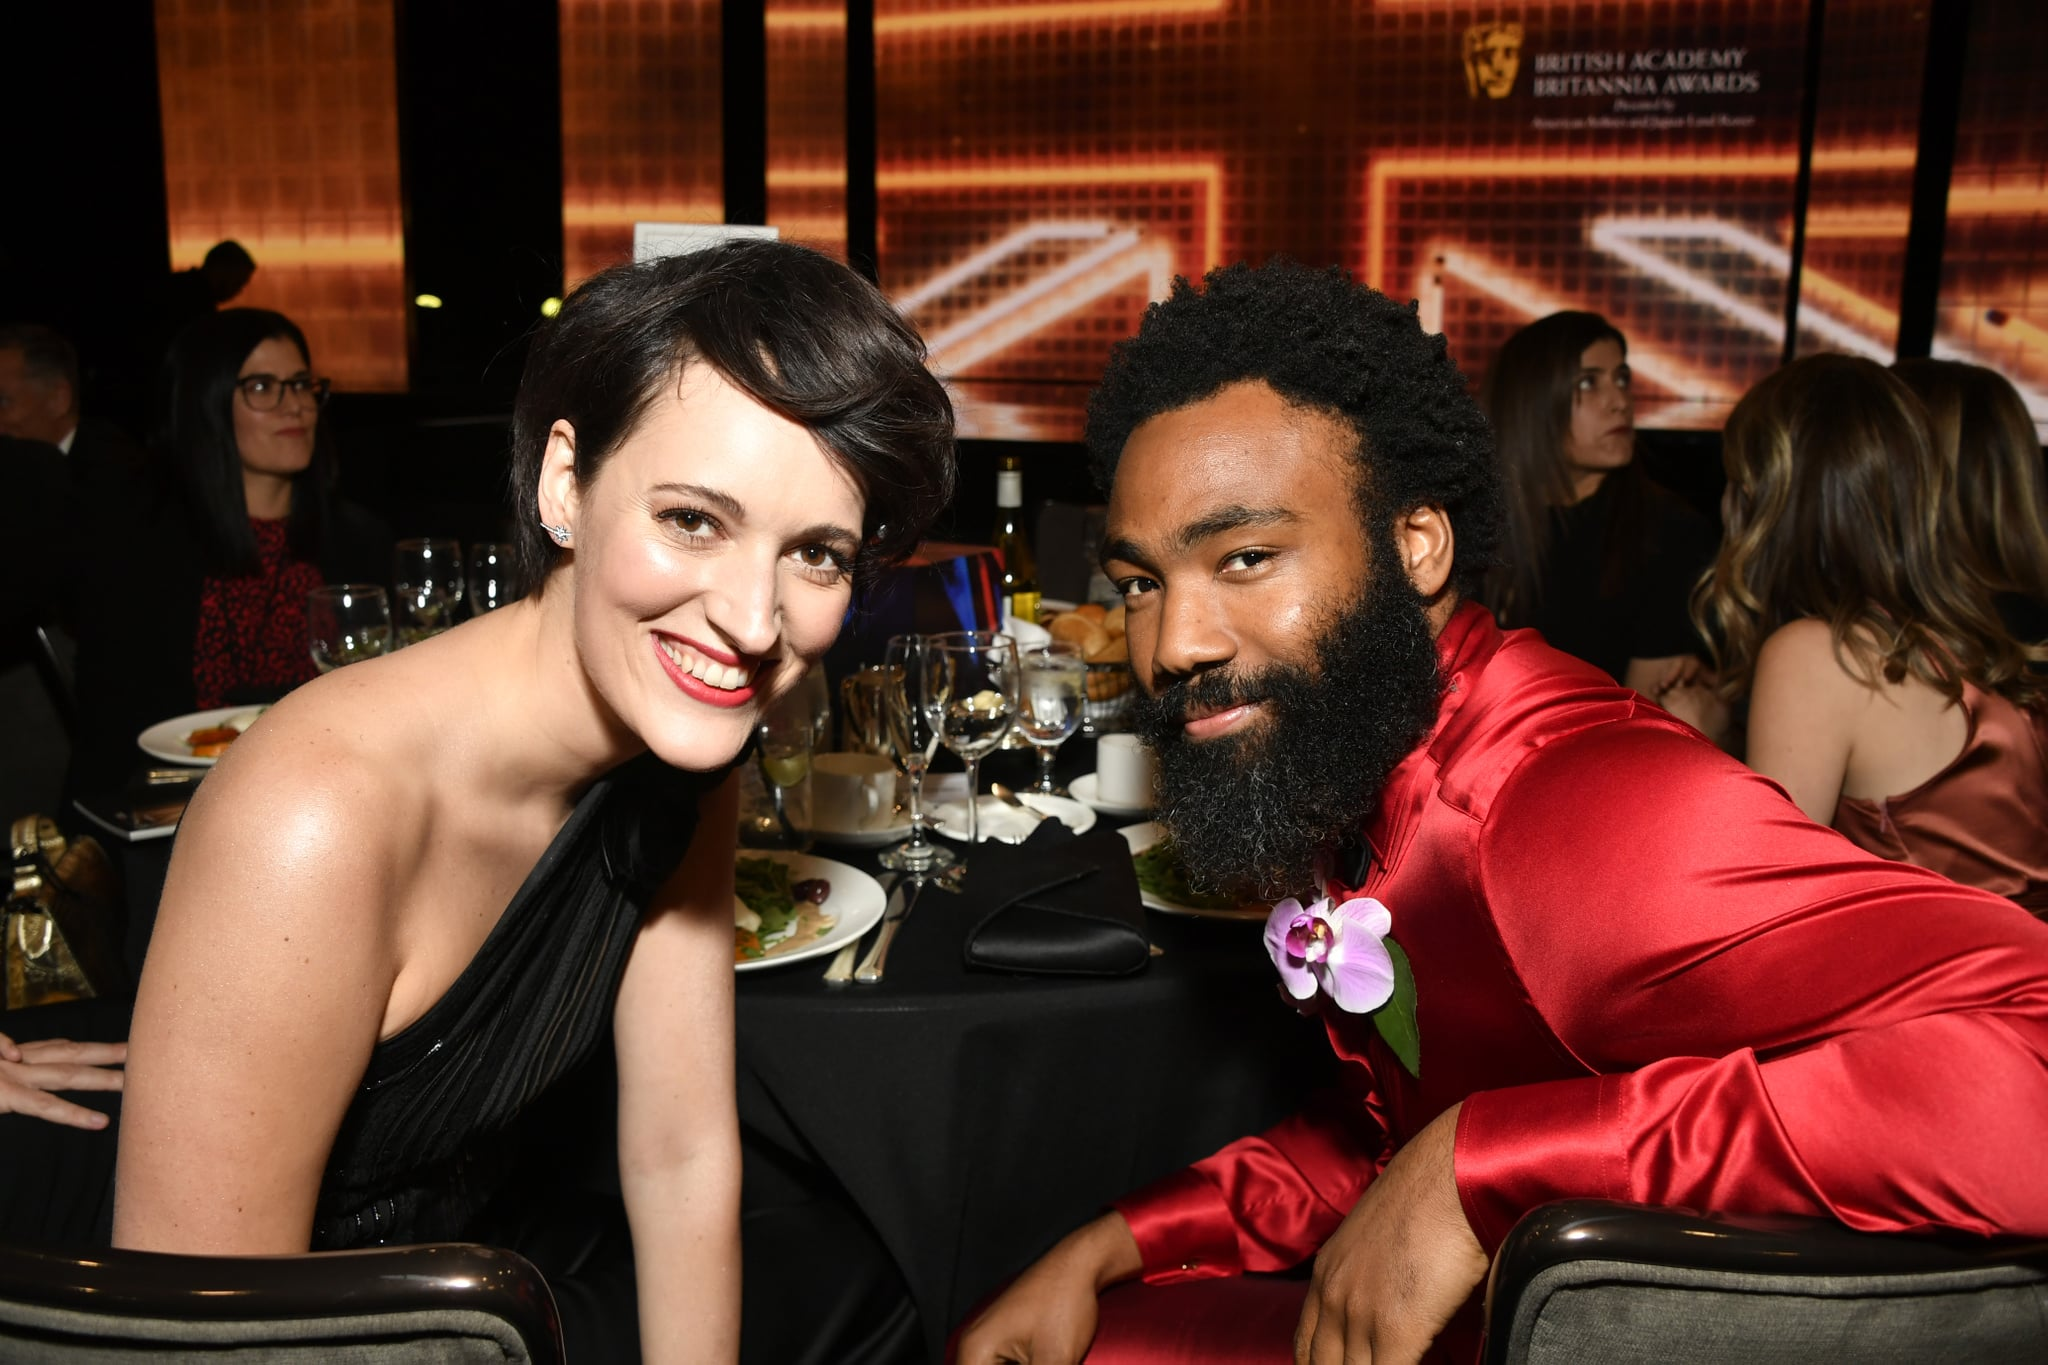 BEVERLY HILLS, CALIFORNIA - OCTOBER 25: (L-R) Phoebe Waller-Bridge and Donald Glover pose during the 2019 British Academy Britannia Awards presented by American Airlines and Jaguar Land Rover at The Beverly Hilton Hotel on October 25, 2019 in Beverly Hills, California. (Photo by Frazer Harrison/BAFTA LA/Getty Images for BAFTA LA)